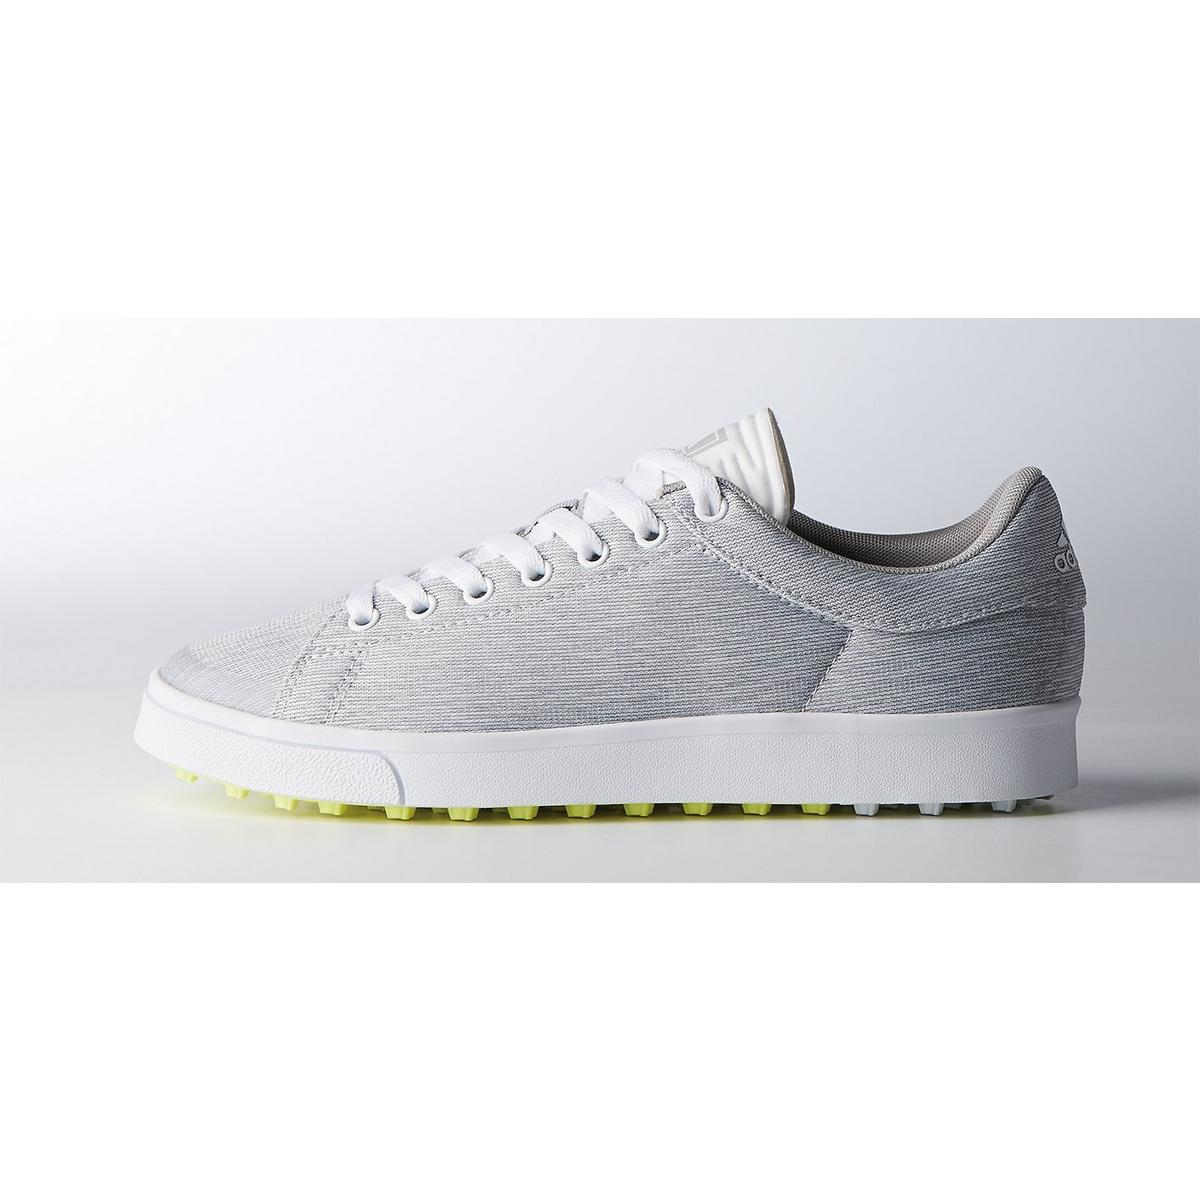 release date 570bf 28292 ... Womens Adicross Classic Spikeless Golf Shoe - BLK Golf Town outlet on  sale ca4f8 59f4d Adidas ...